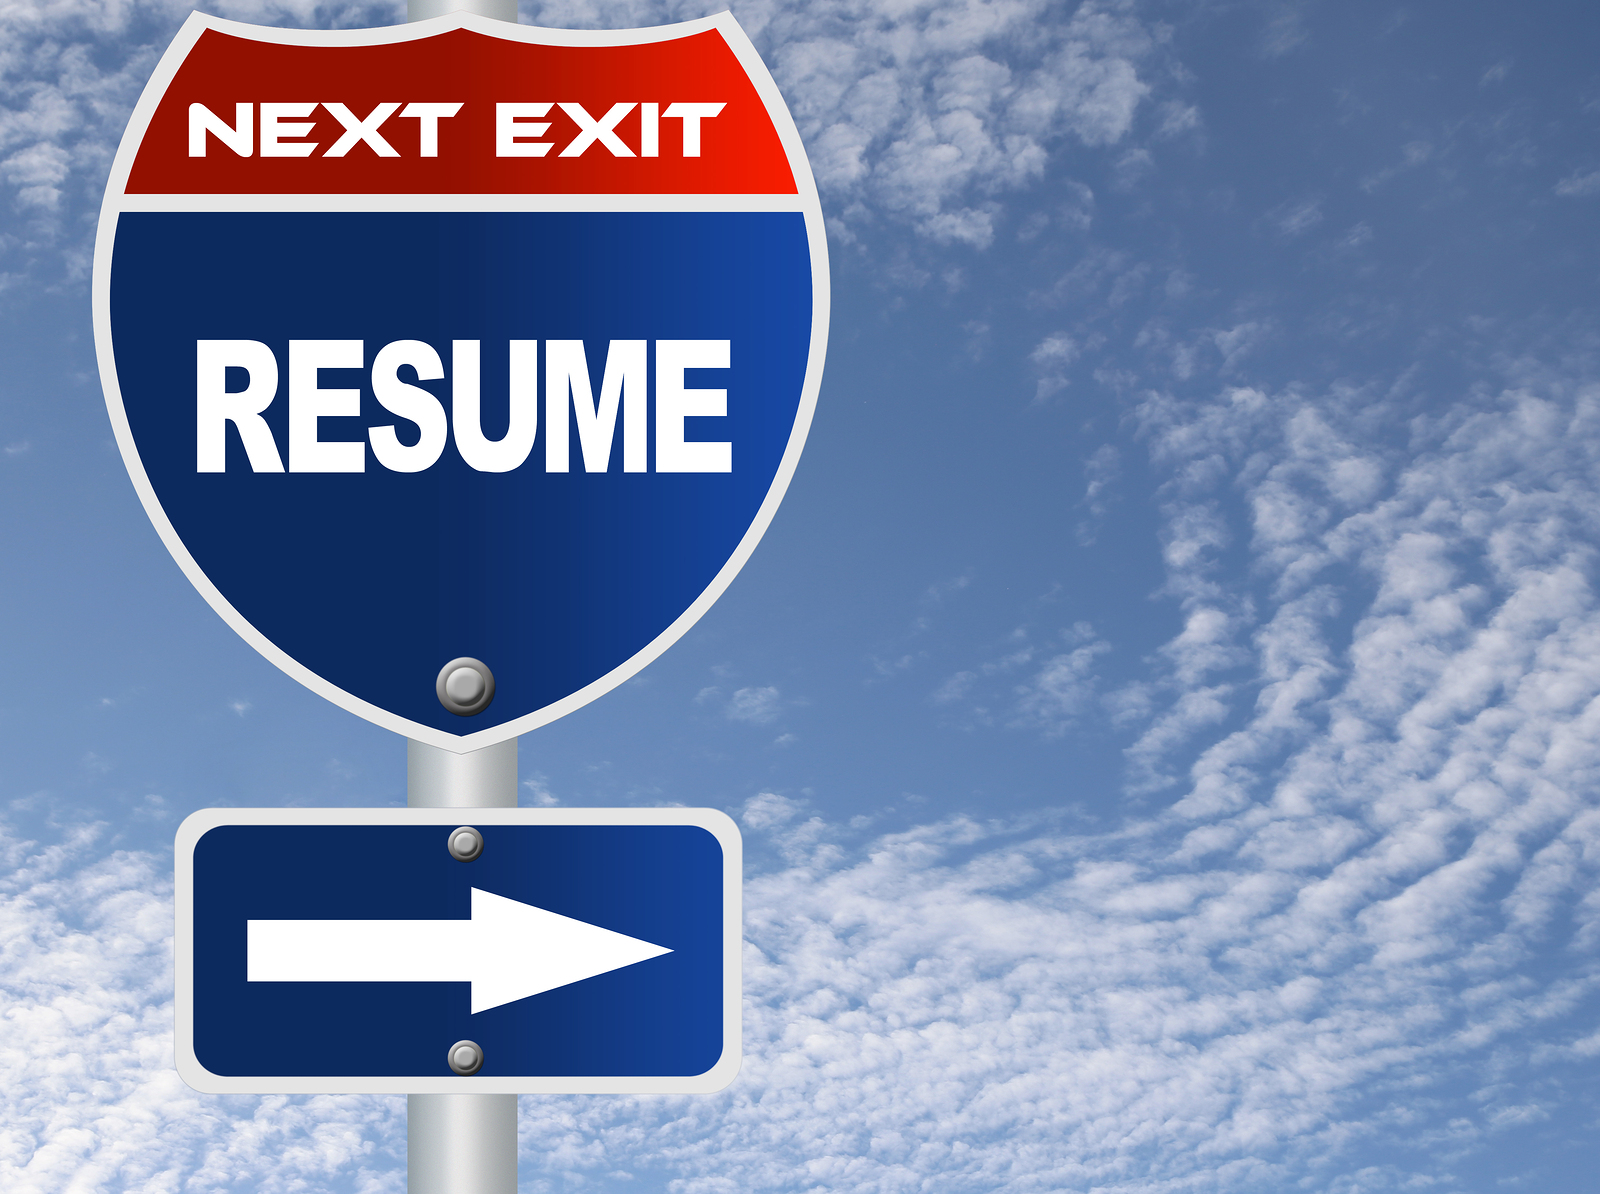 Get your resume reviewed today